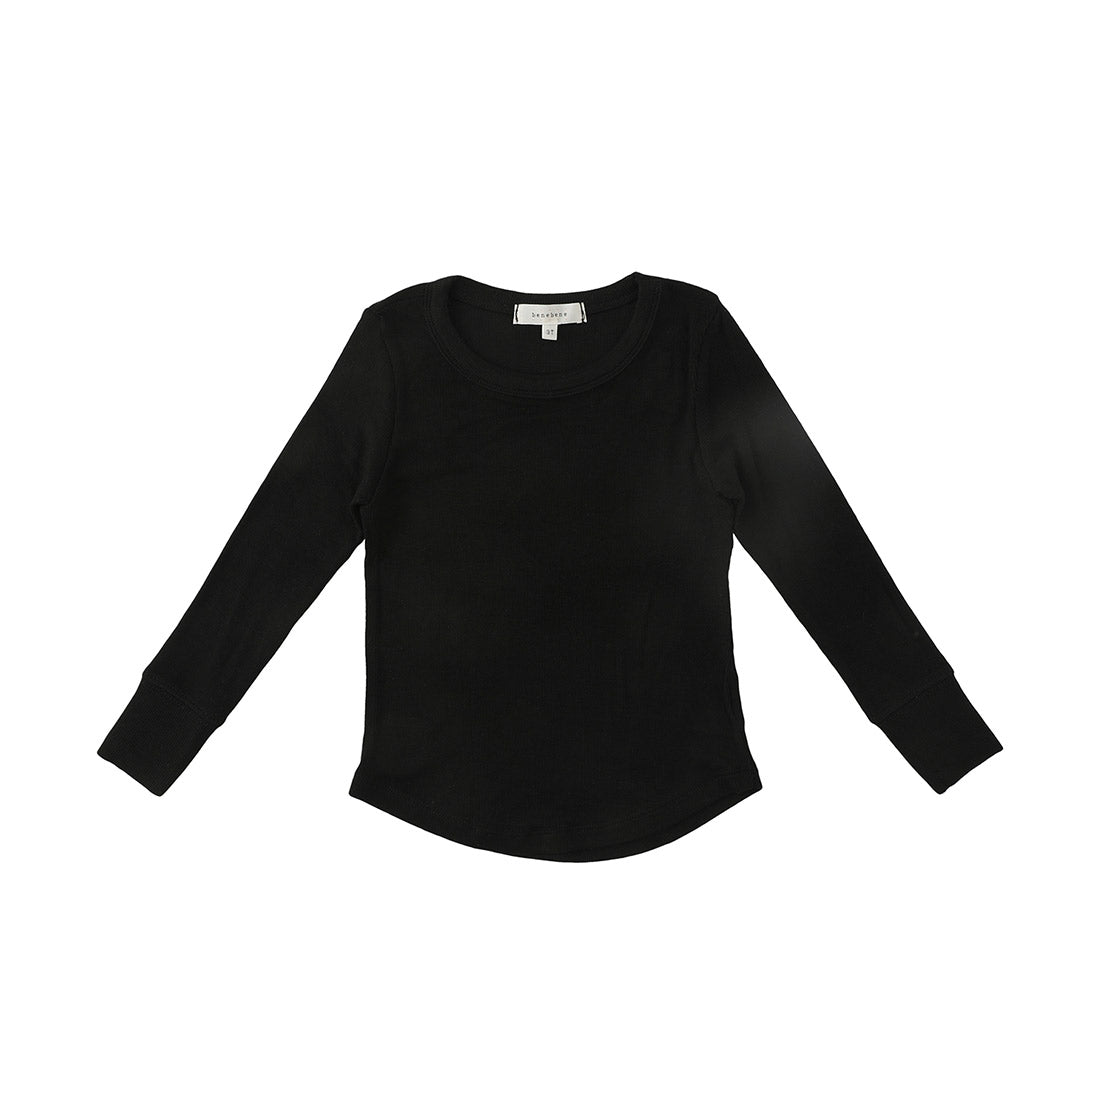 Bene Bene Black Buddy Basic Tee